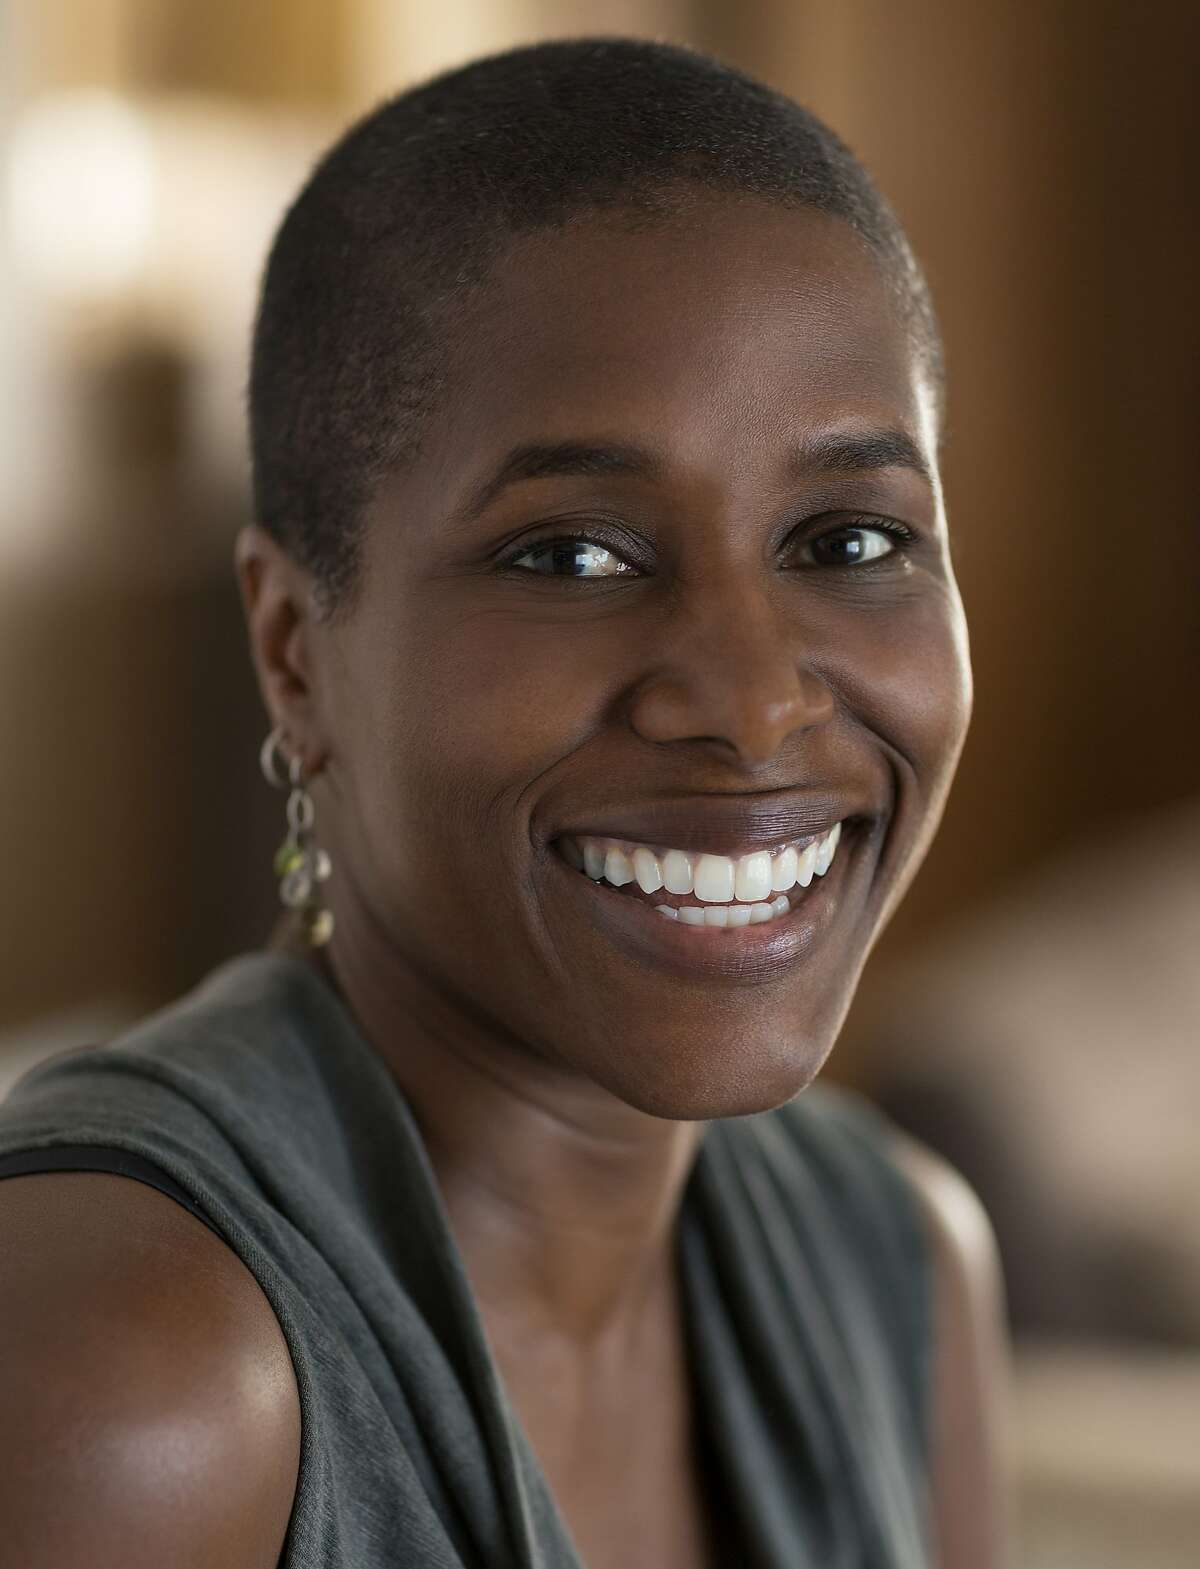 """Natalie Baszile, author of the novel """"Queen Sugar"""" which is now a television series on Oprah's OWN"""